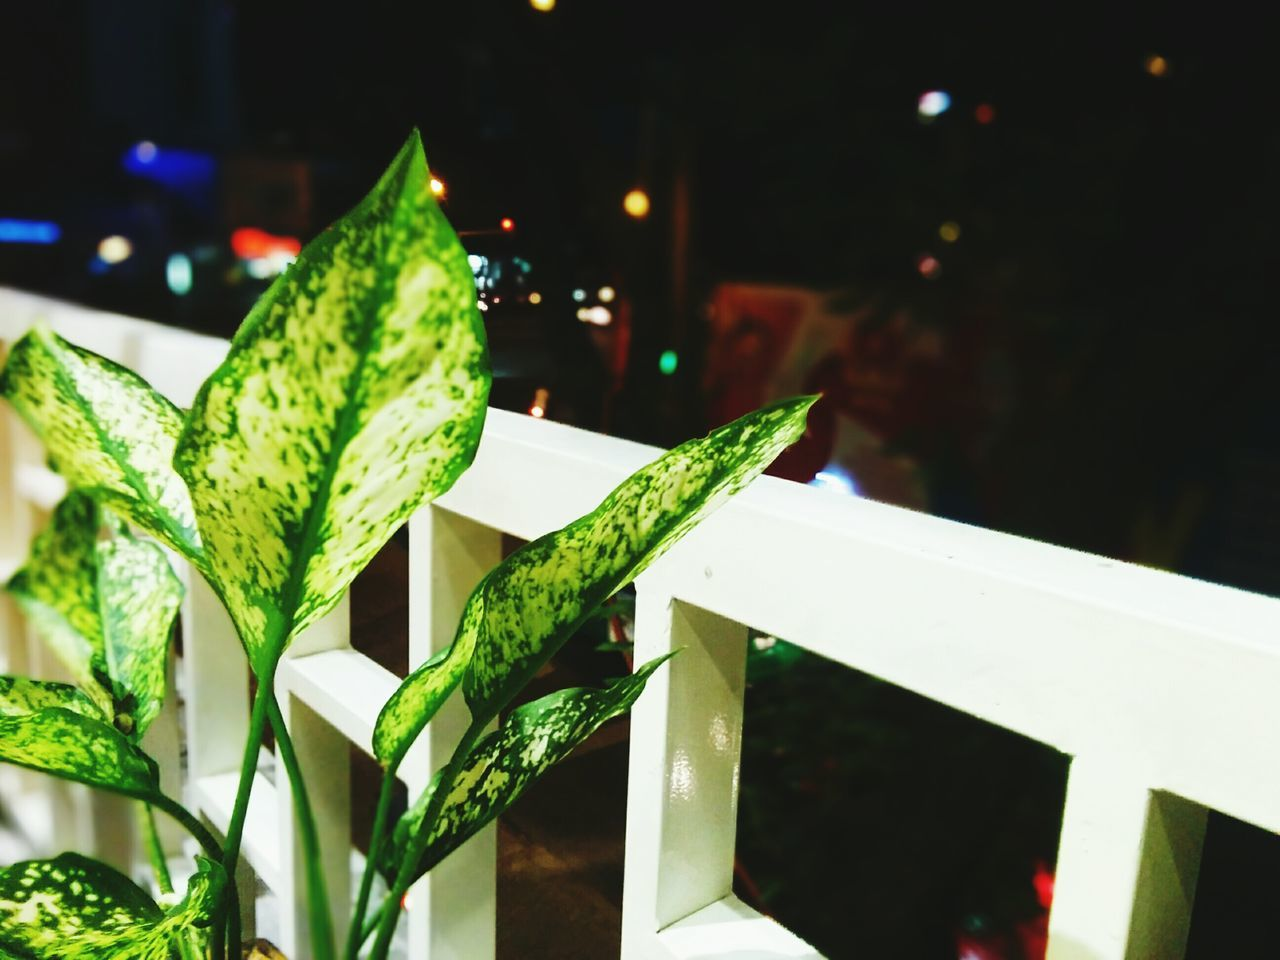 green color, night, close-up, focus on foreground, no people, leaf, outdoors, freshness, illuminated